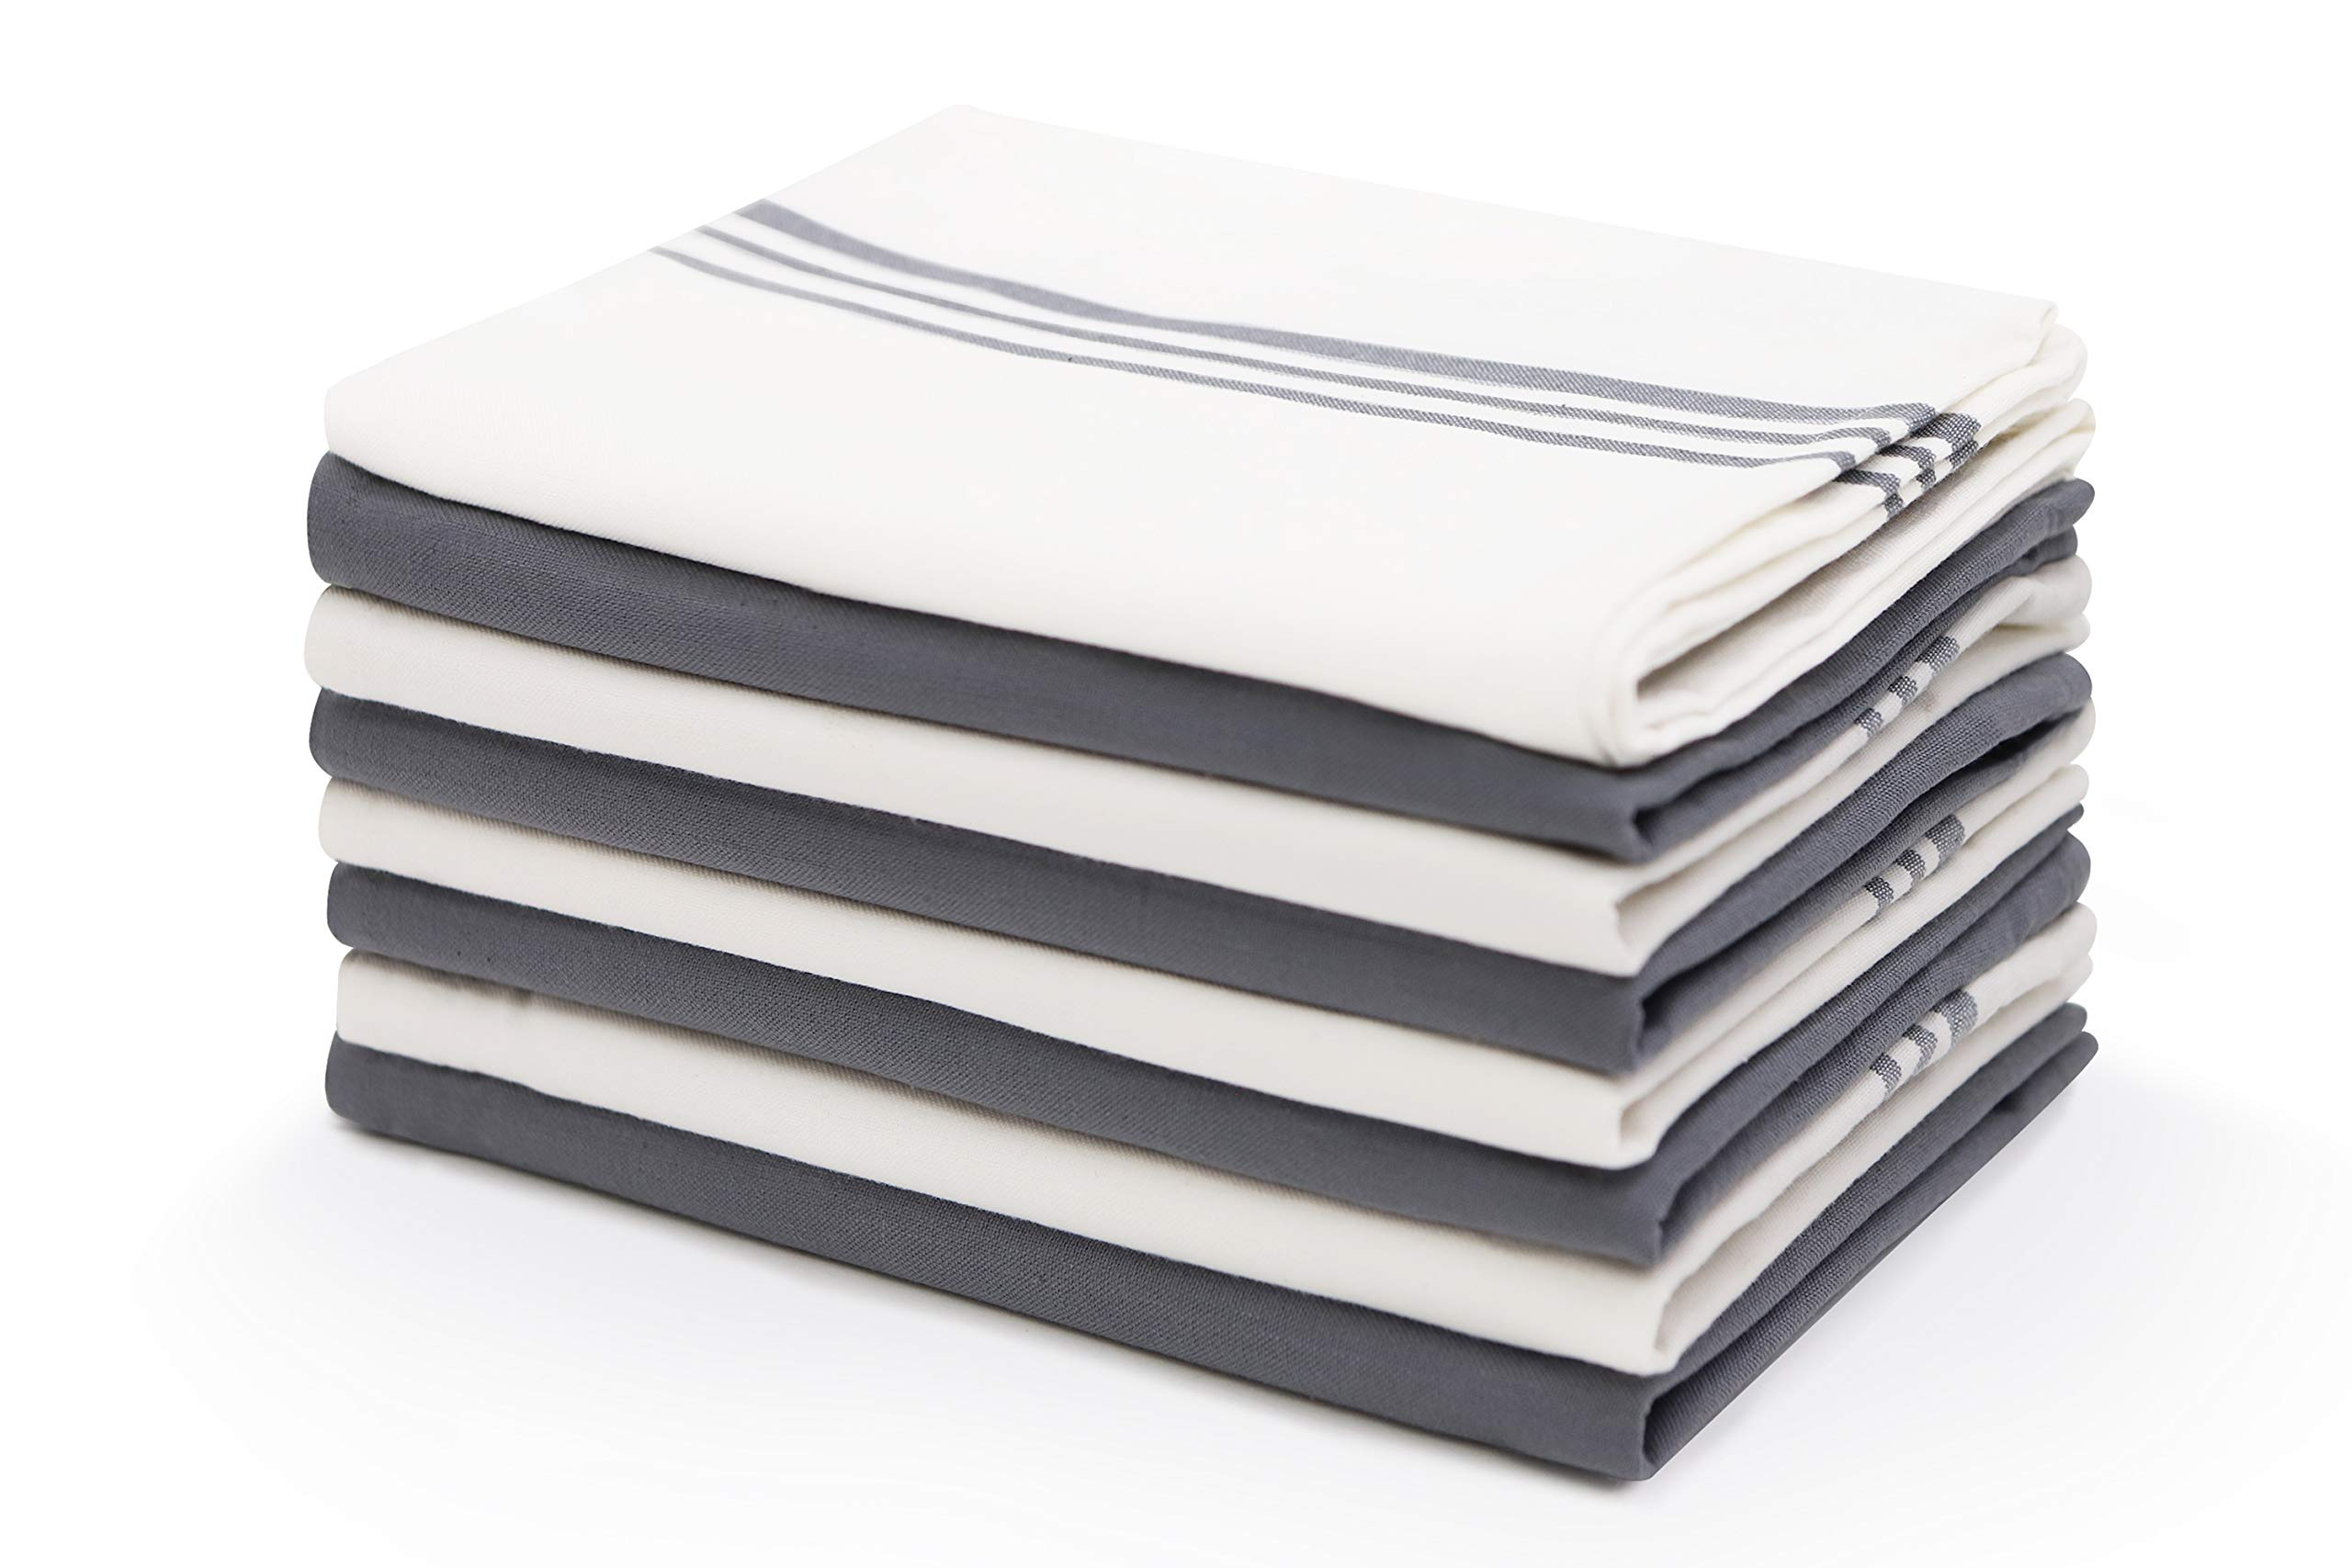 Harringdons Kitchen Dish Towels Cotton Tea Towels with Pot Holder, 9 Piece Set. Gray and White 4 of Each in Plain Weave. Large, Absorbent Dish Cloths 28'' x 20''. There's no Substitute for Quality. by Harringdons